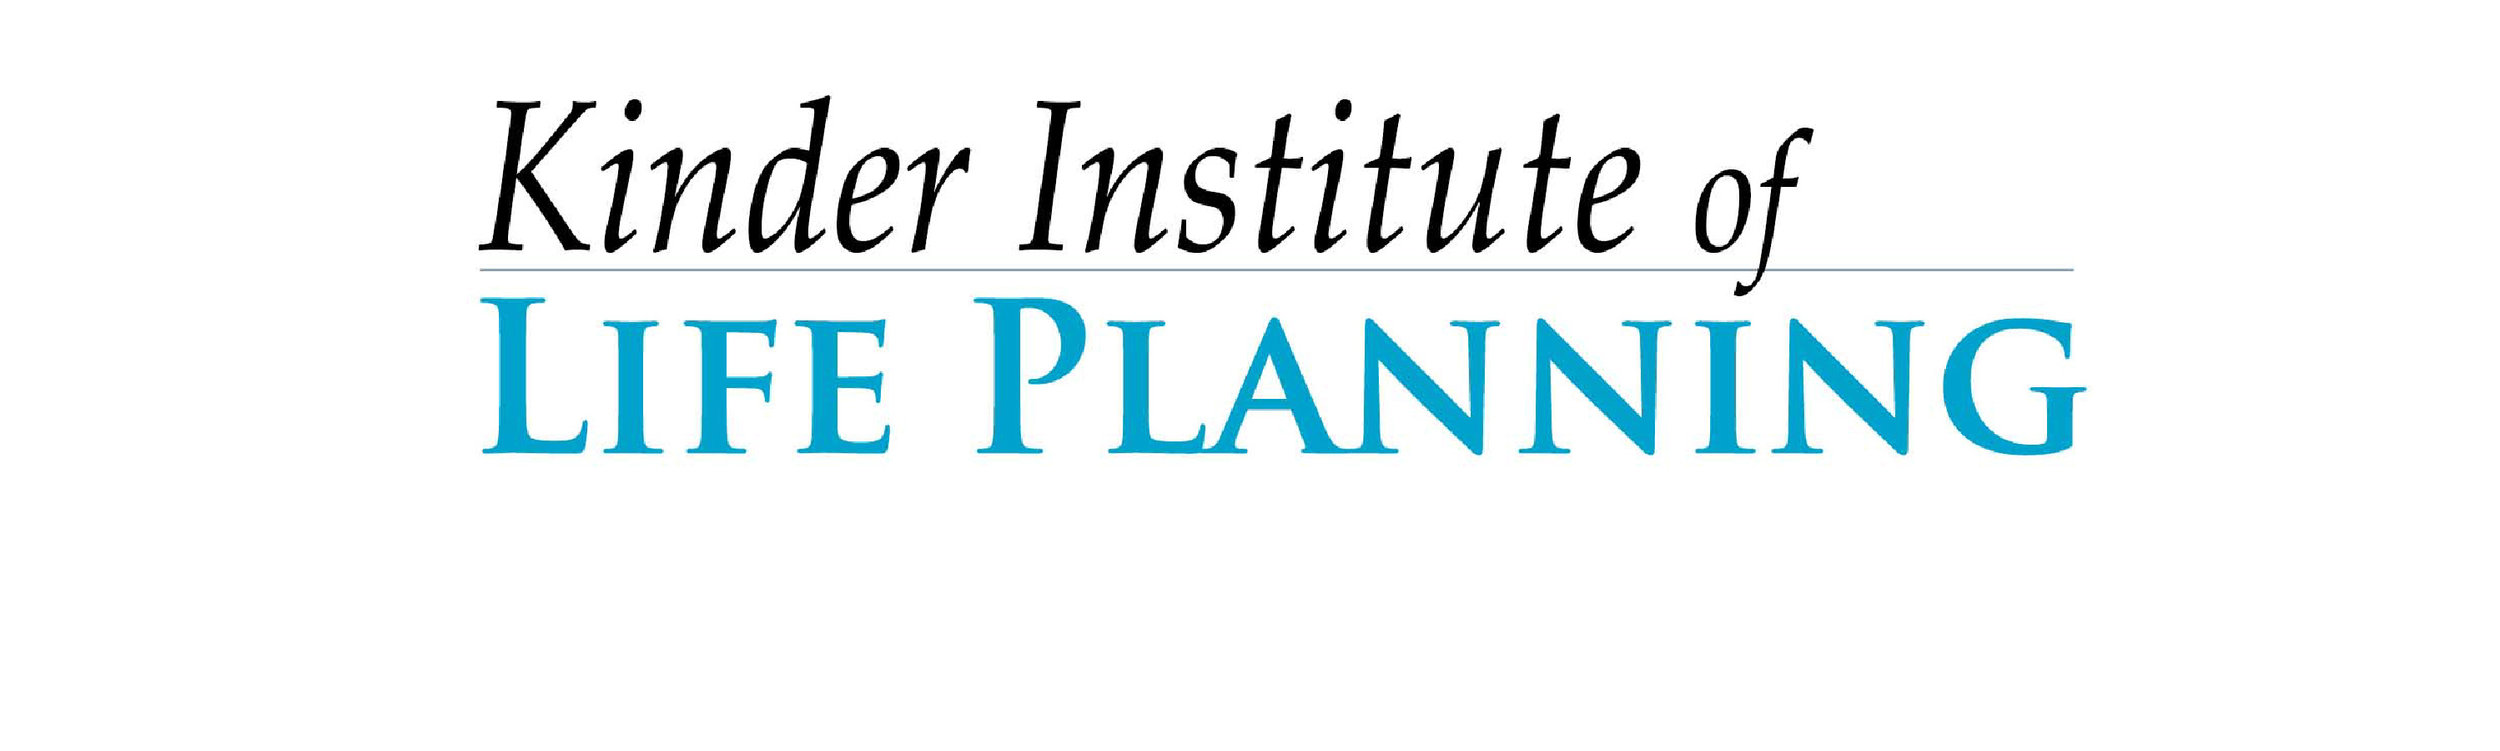 Kinder Institute of Life Planning